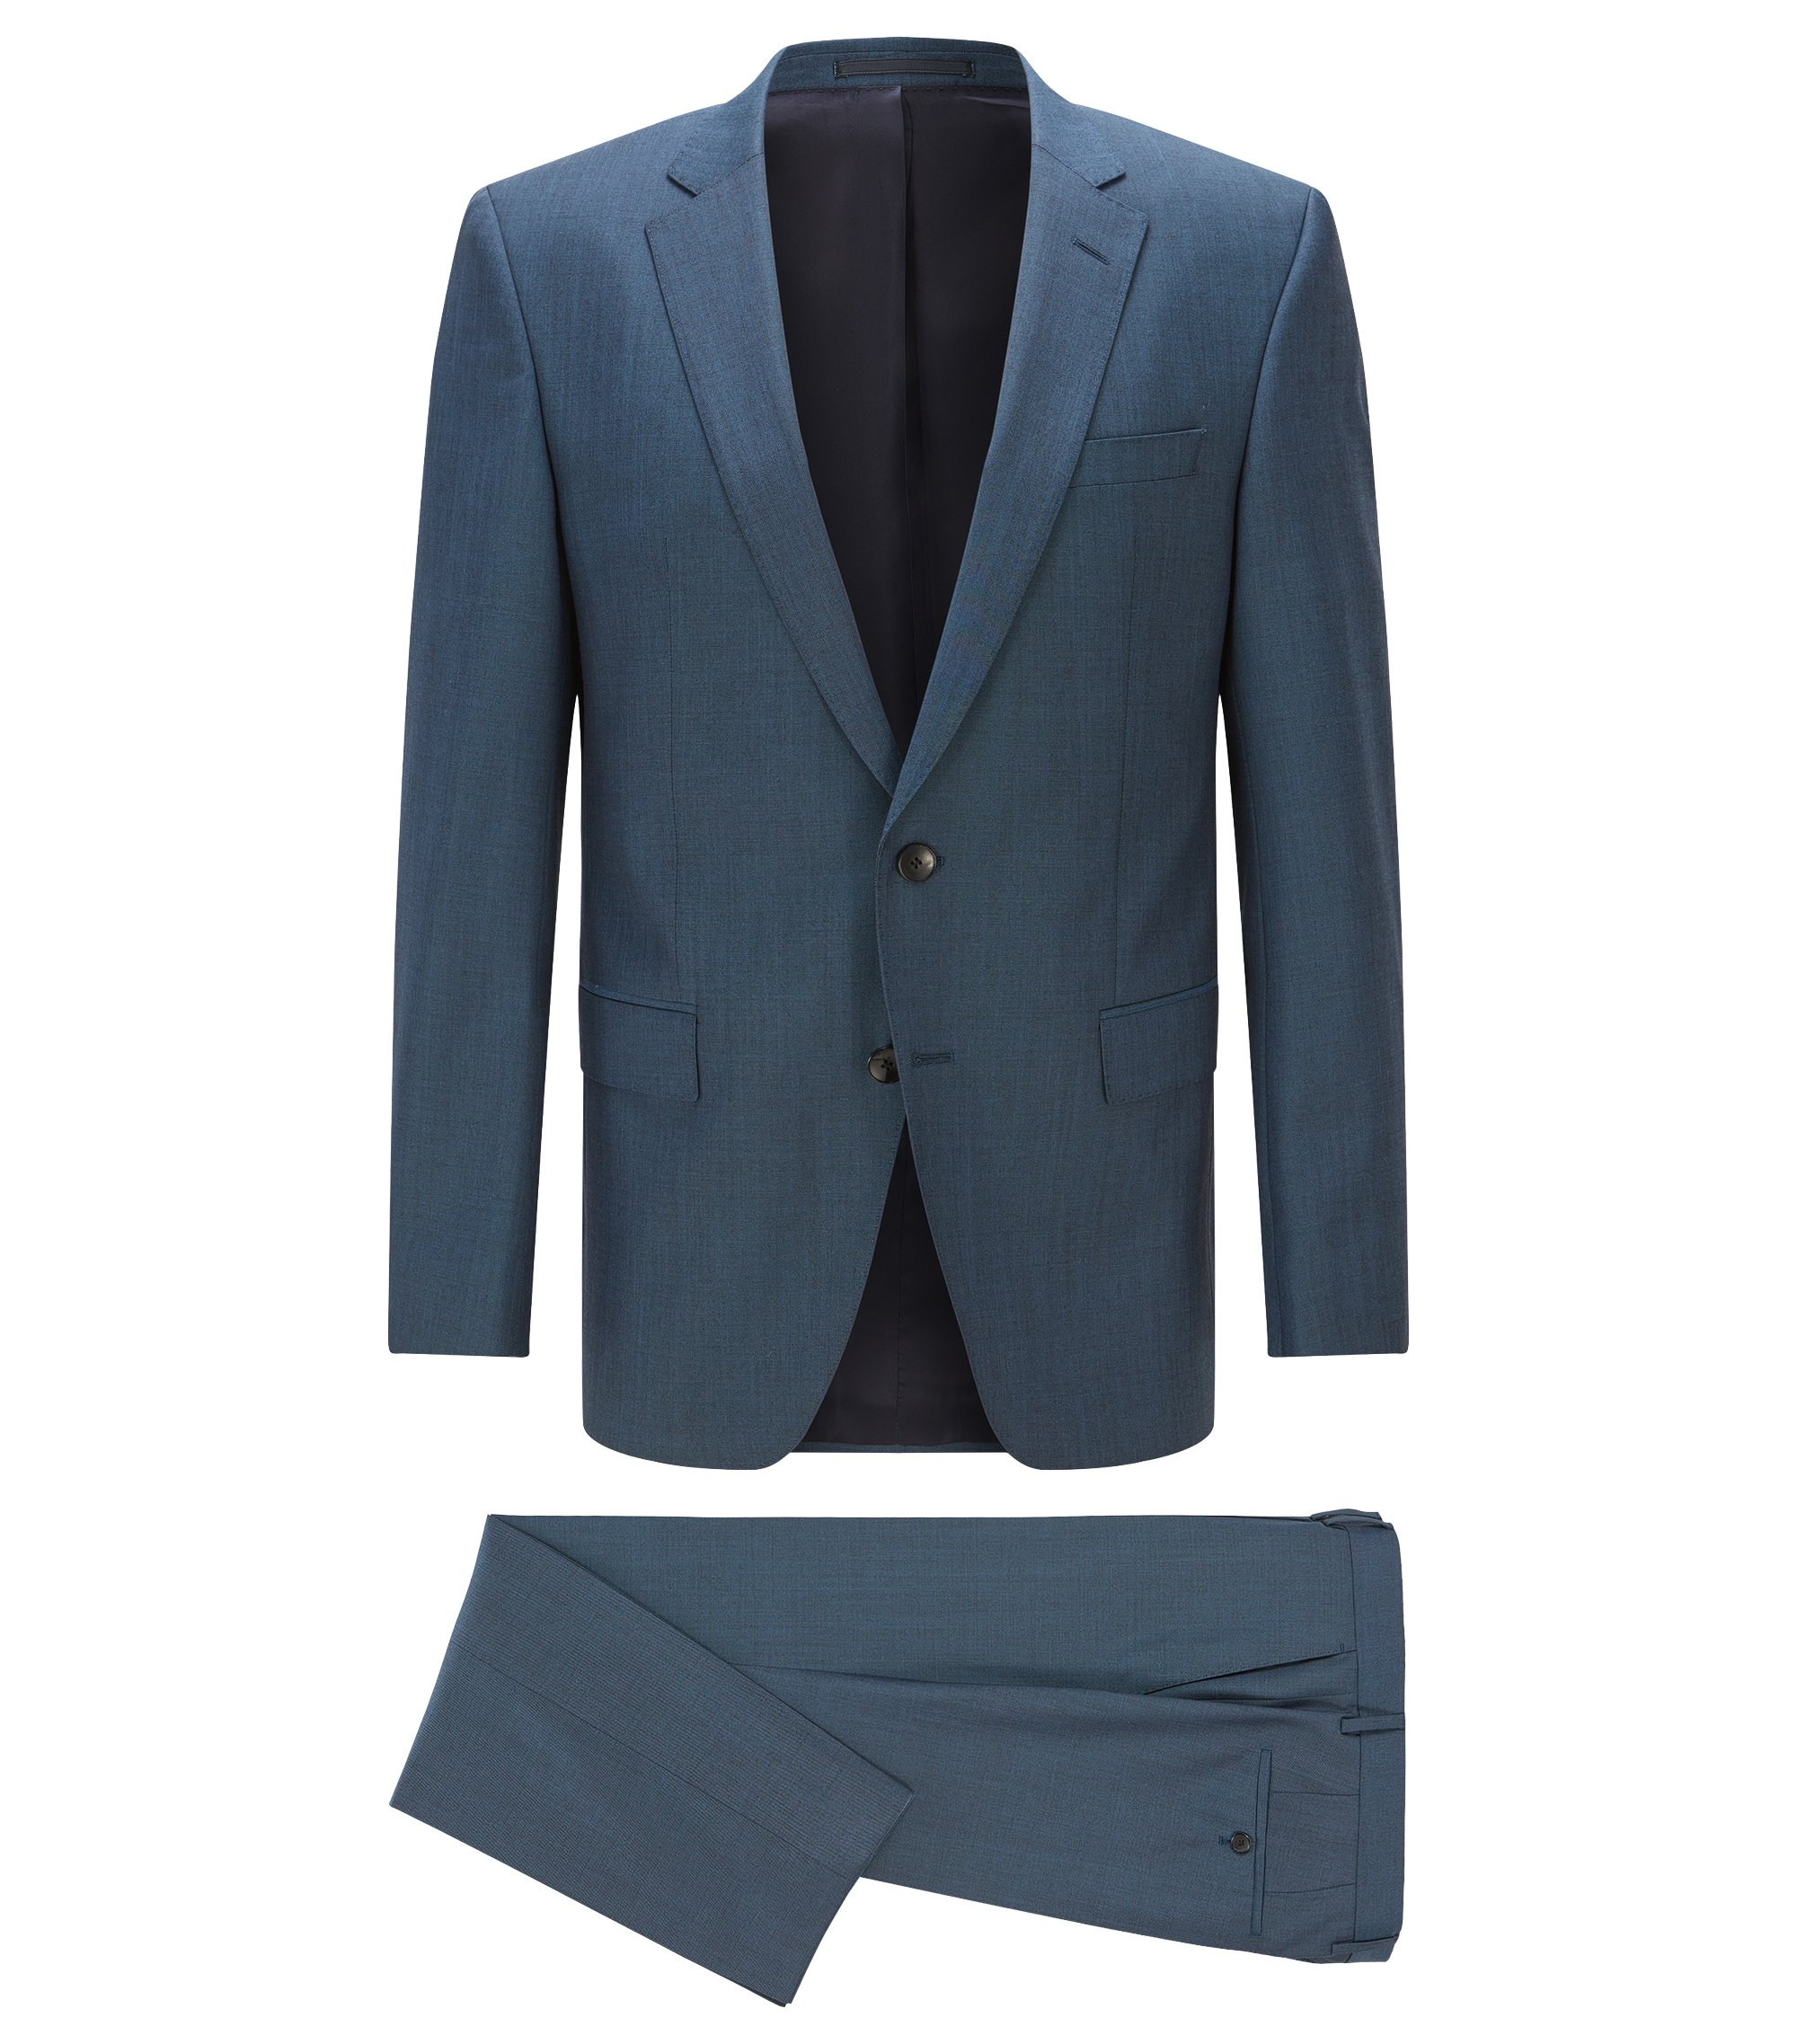 Italian Virgin Wool Suit, Slim Fit | Huge/Genius, Turquoise